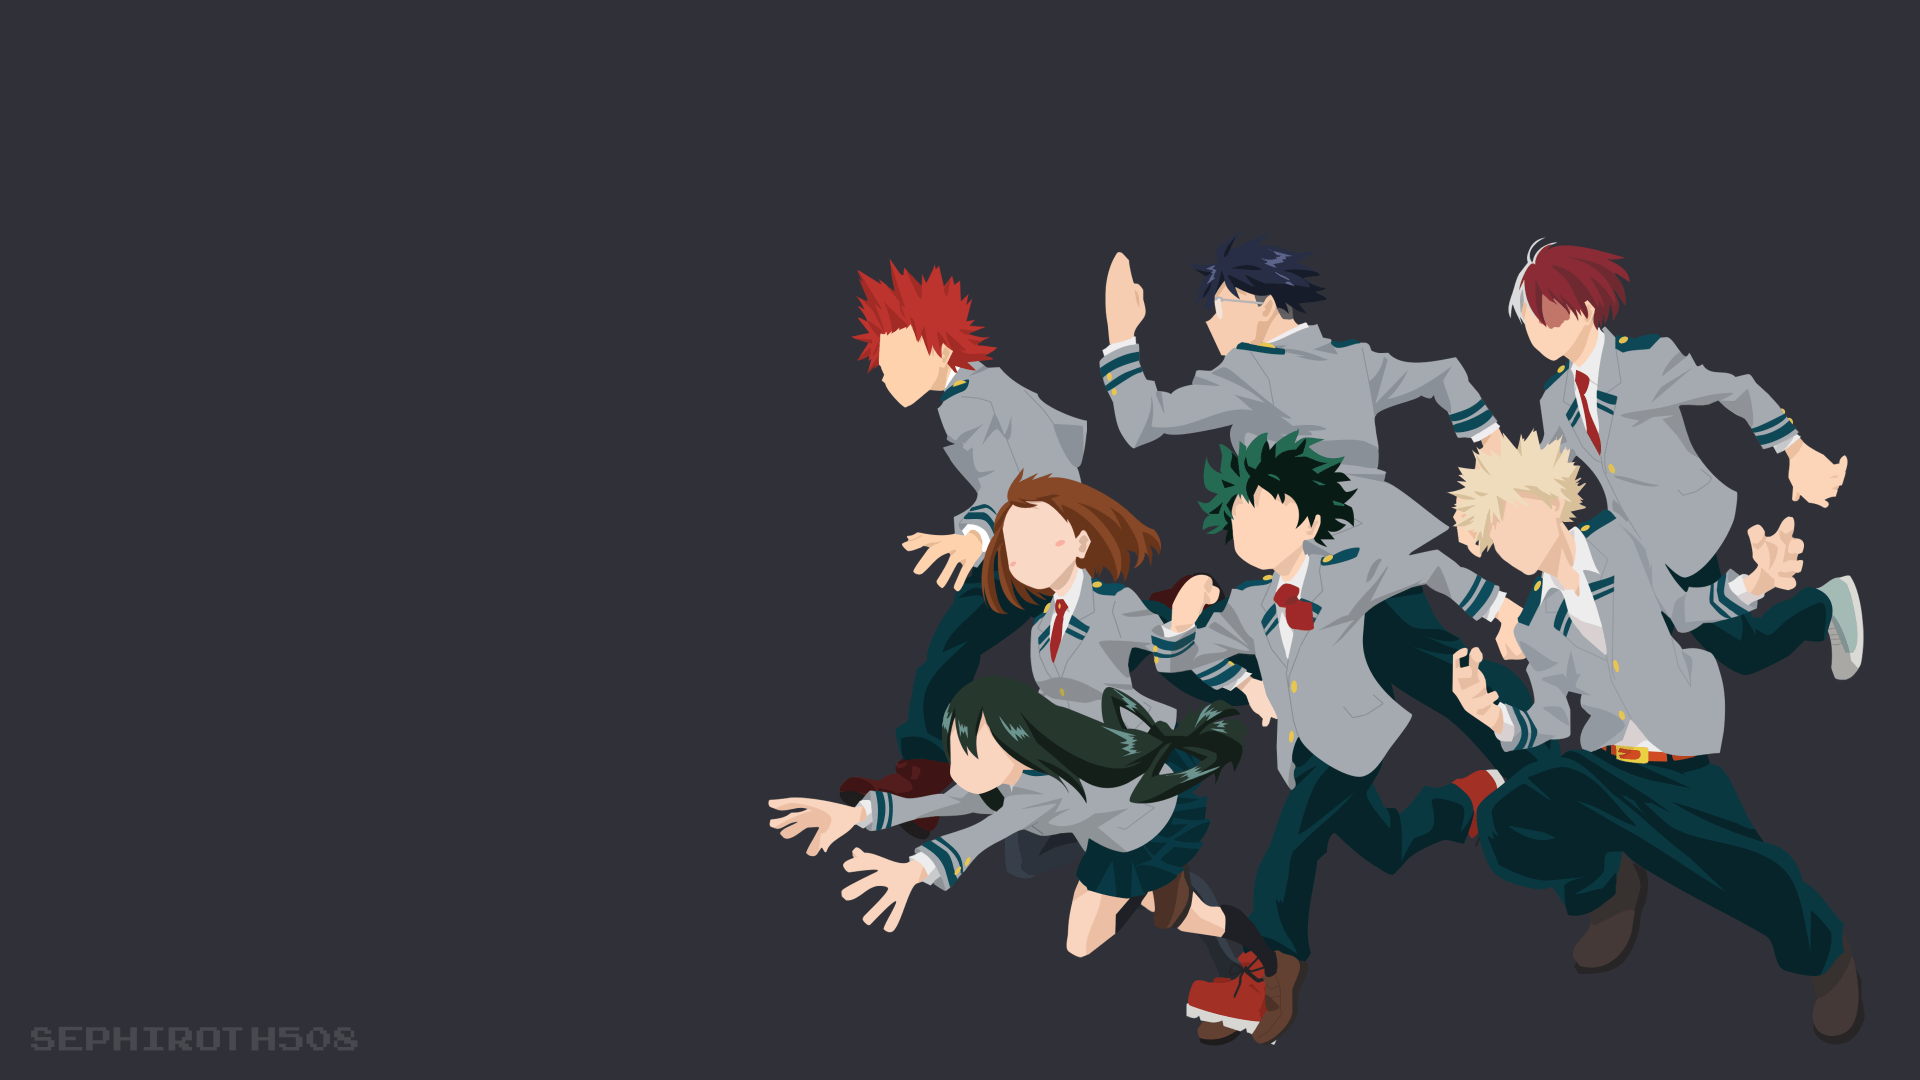 Kirishima X Deku Wallpapers Wallpaper Cave